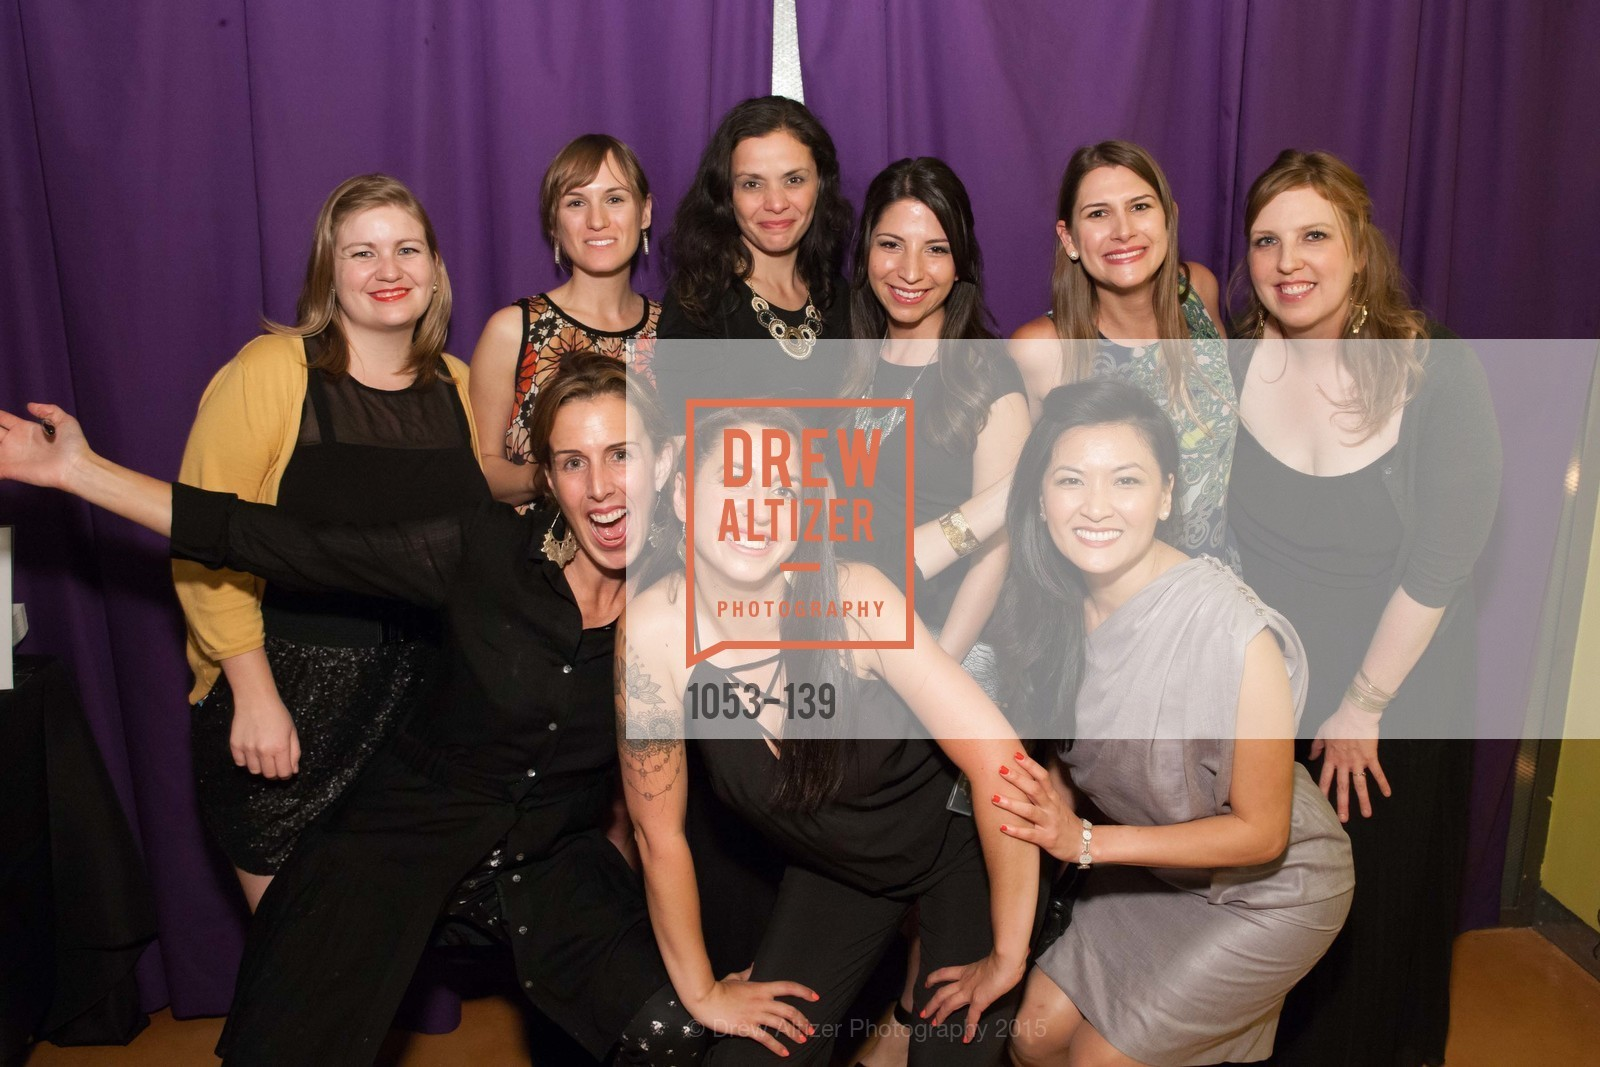 Jennifer Board, Tamara Scheulob, Jen Greco, Homeless Prenatal Program Our House, Our Mission Gala, 2500 18th St, May 29th, 2015,Drew Altizer, Drew Altizer Photography, full-service agency, private events, San Francisco photographer, photographer california